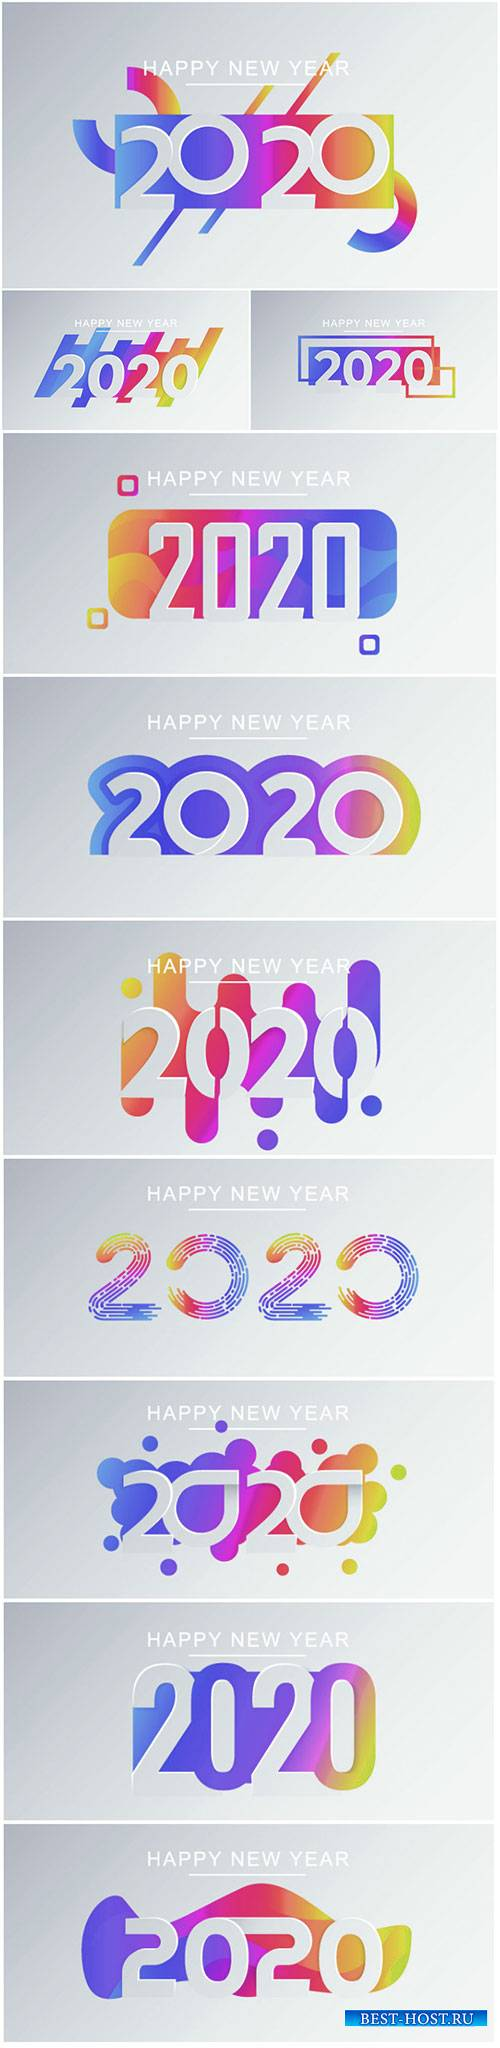 Happy New Year greeting card template, creative paper cut